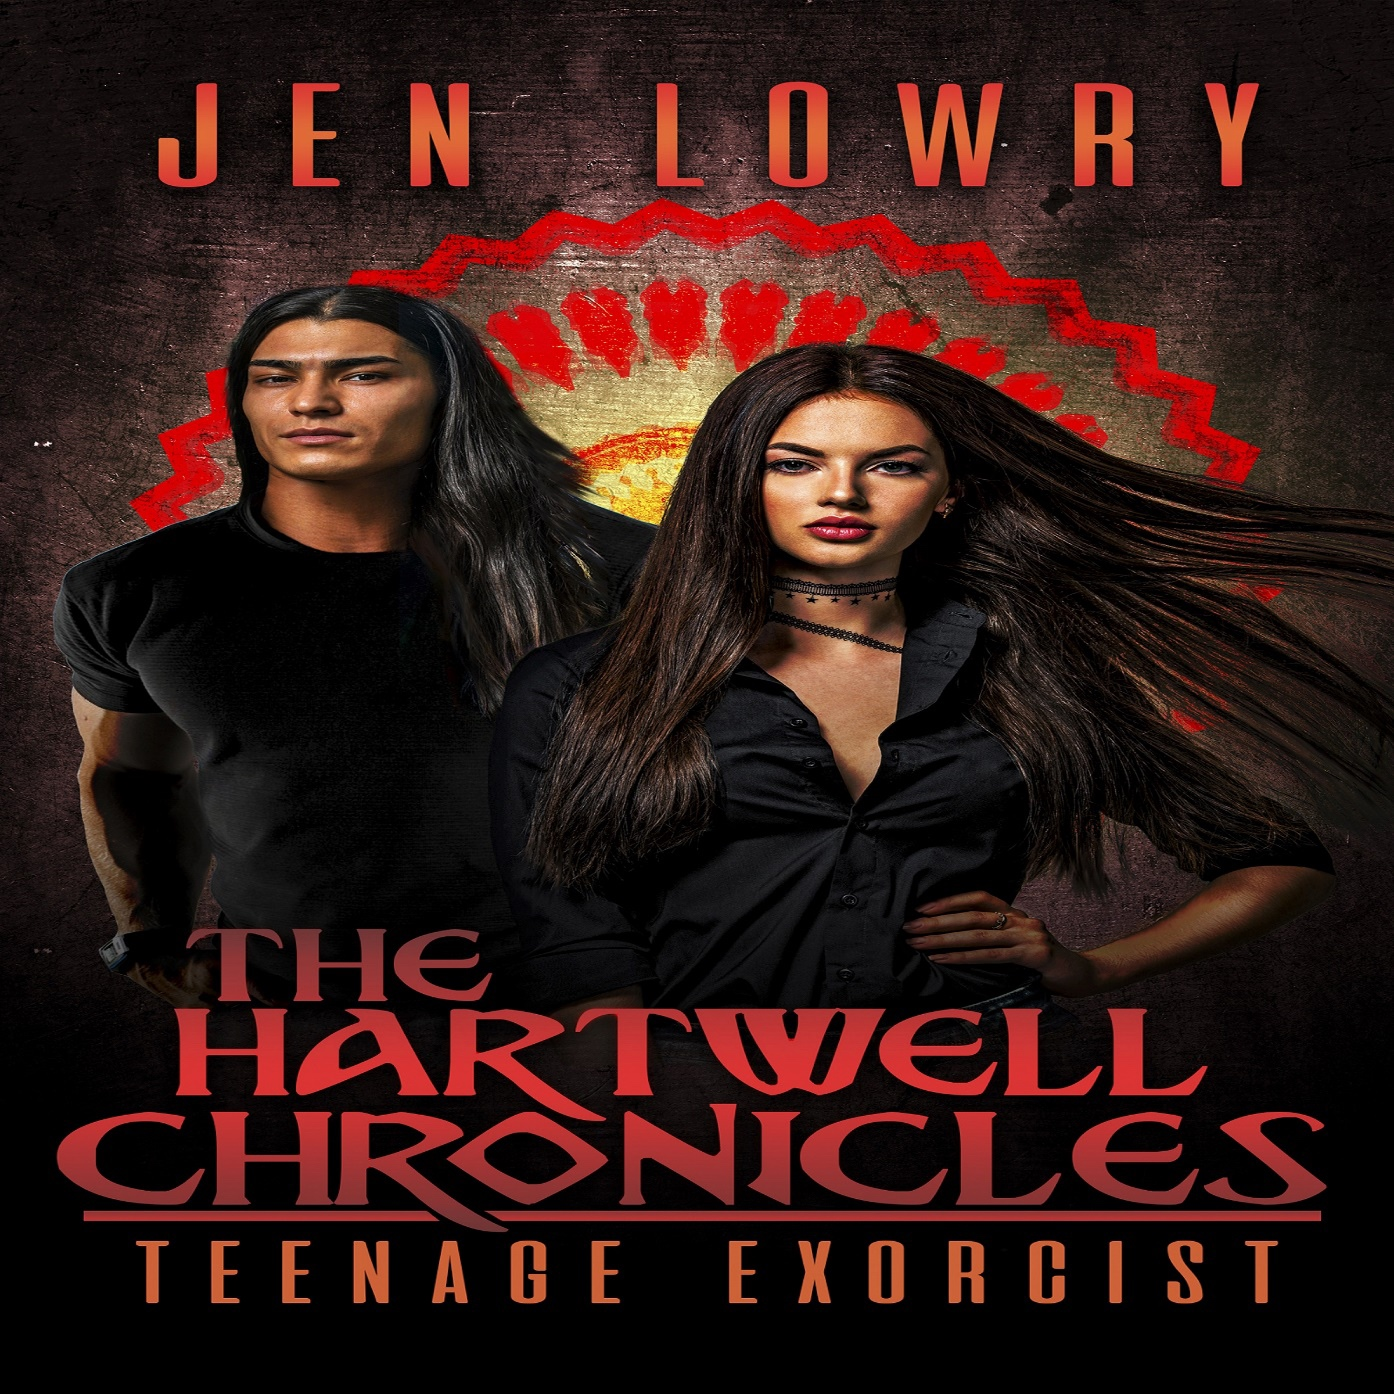 COMING THIS FALL! - Listen to Sheli narrate The Hartwell Chronicles: Teenage Exorcist by Jen Lowry